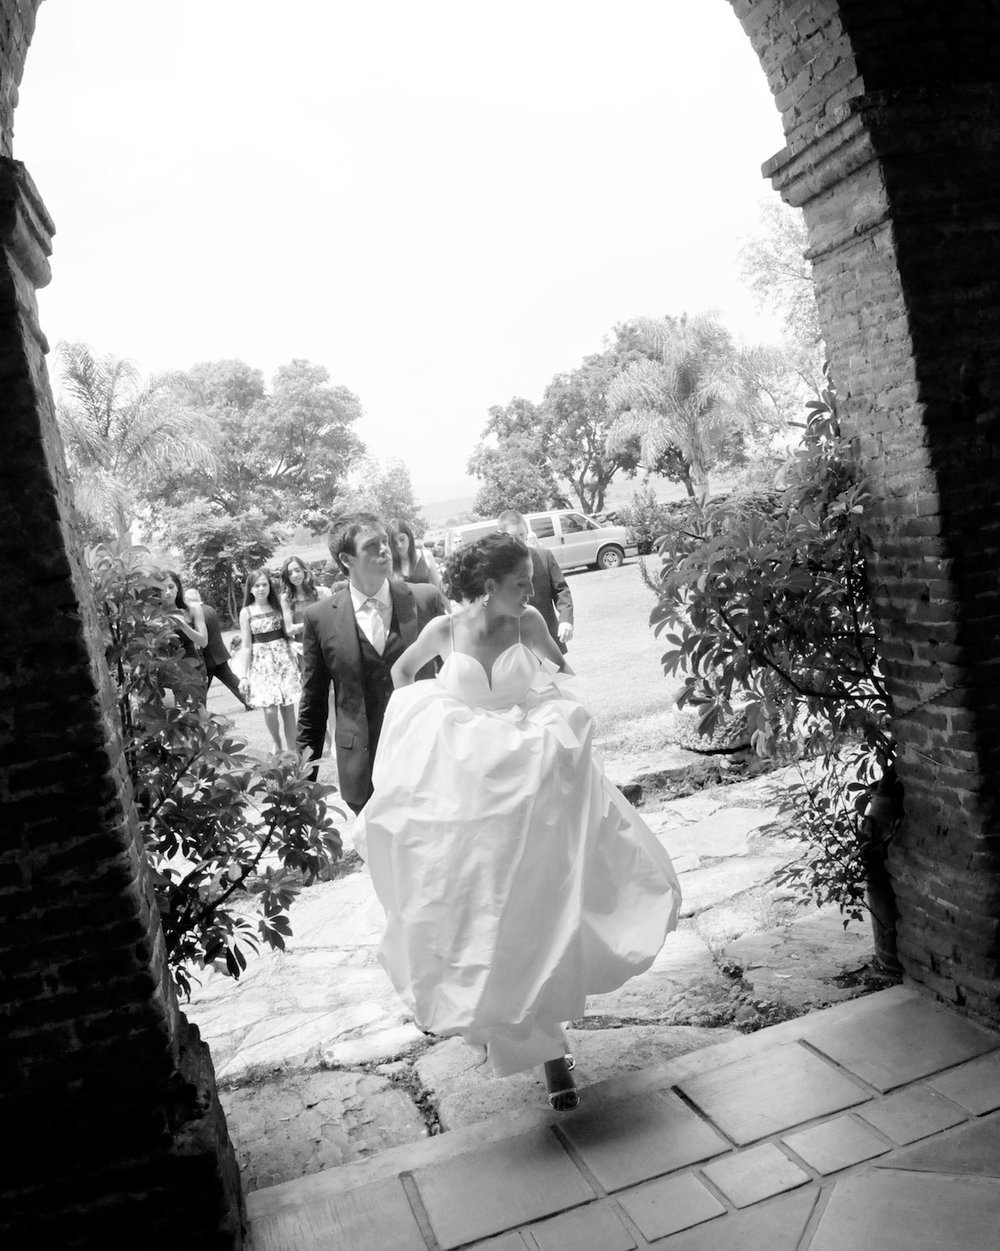 weddings-michal-pfeil-05.jpg